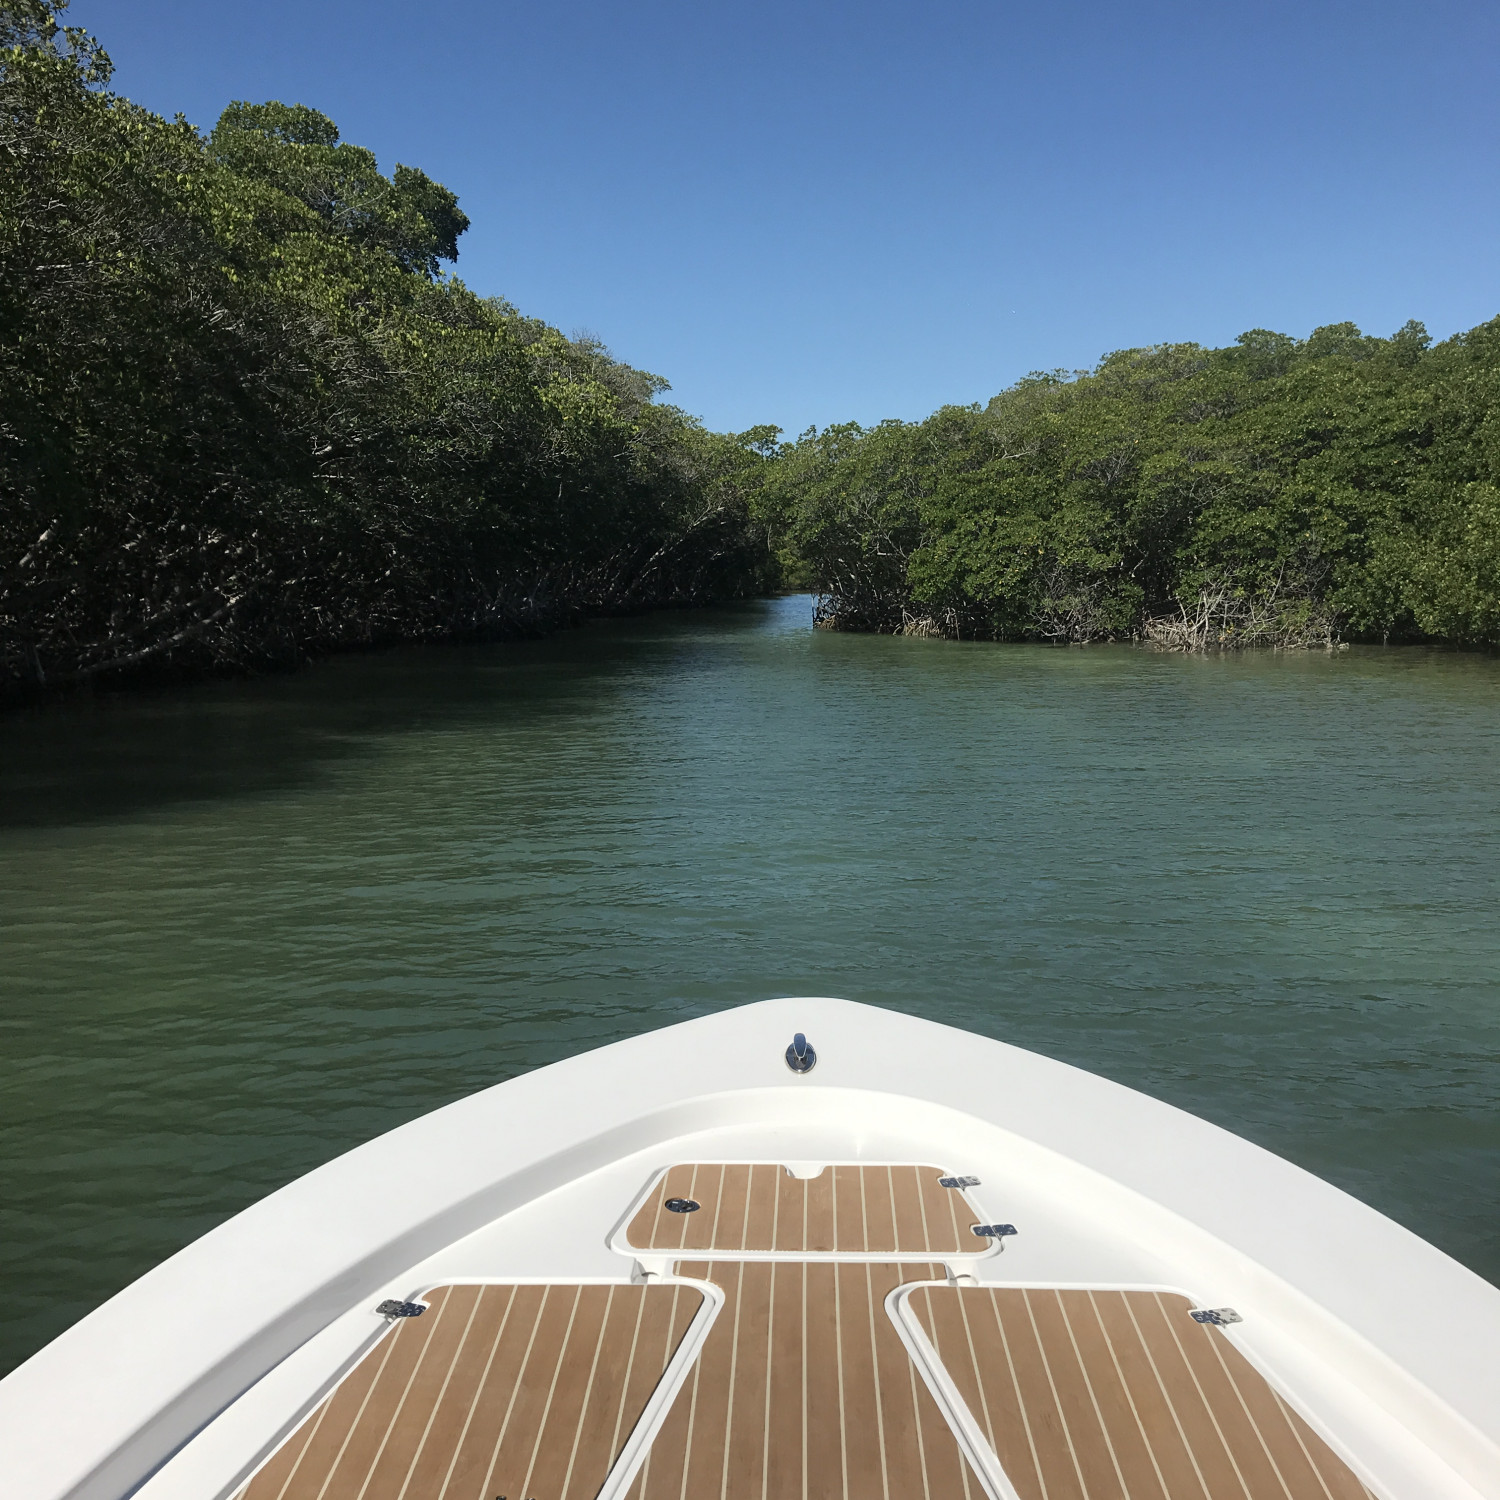 """Title: 'Time flies"""" - On board their Sportsman Masters 227 Bay Boat - Location: Islamorada Fl.. Participating in the Photo Contest #SportsmanMay2018"""